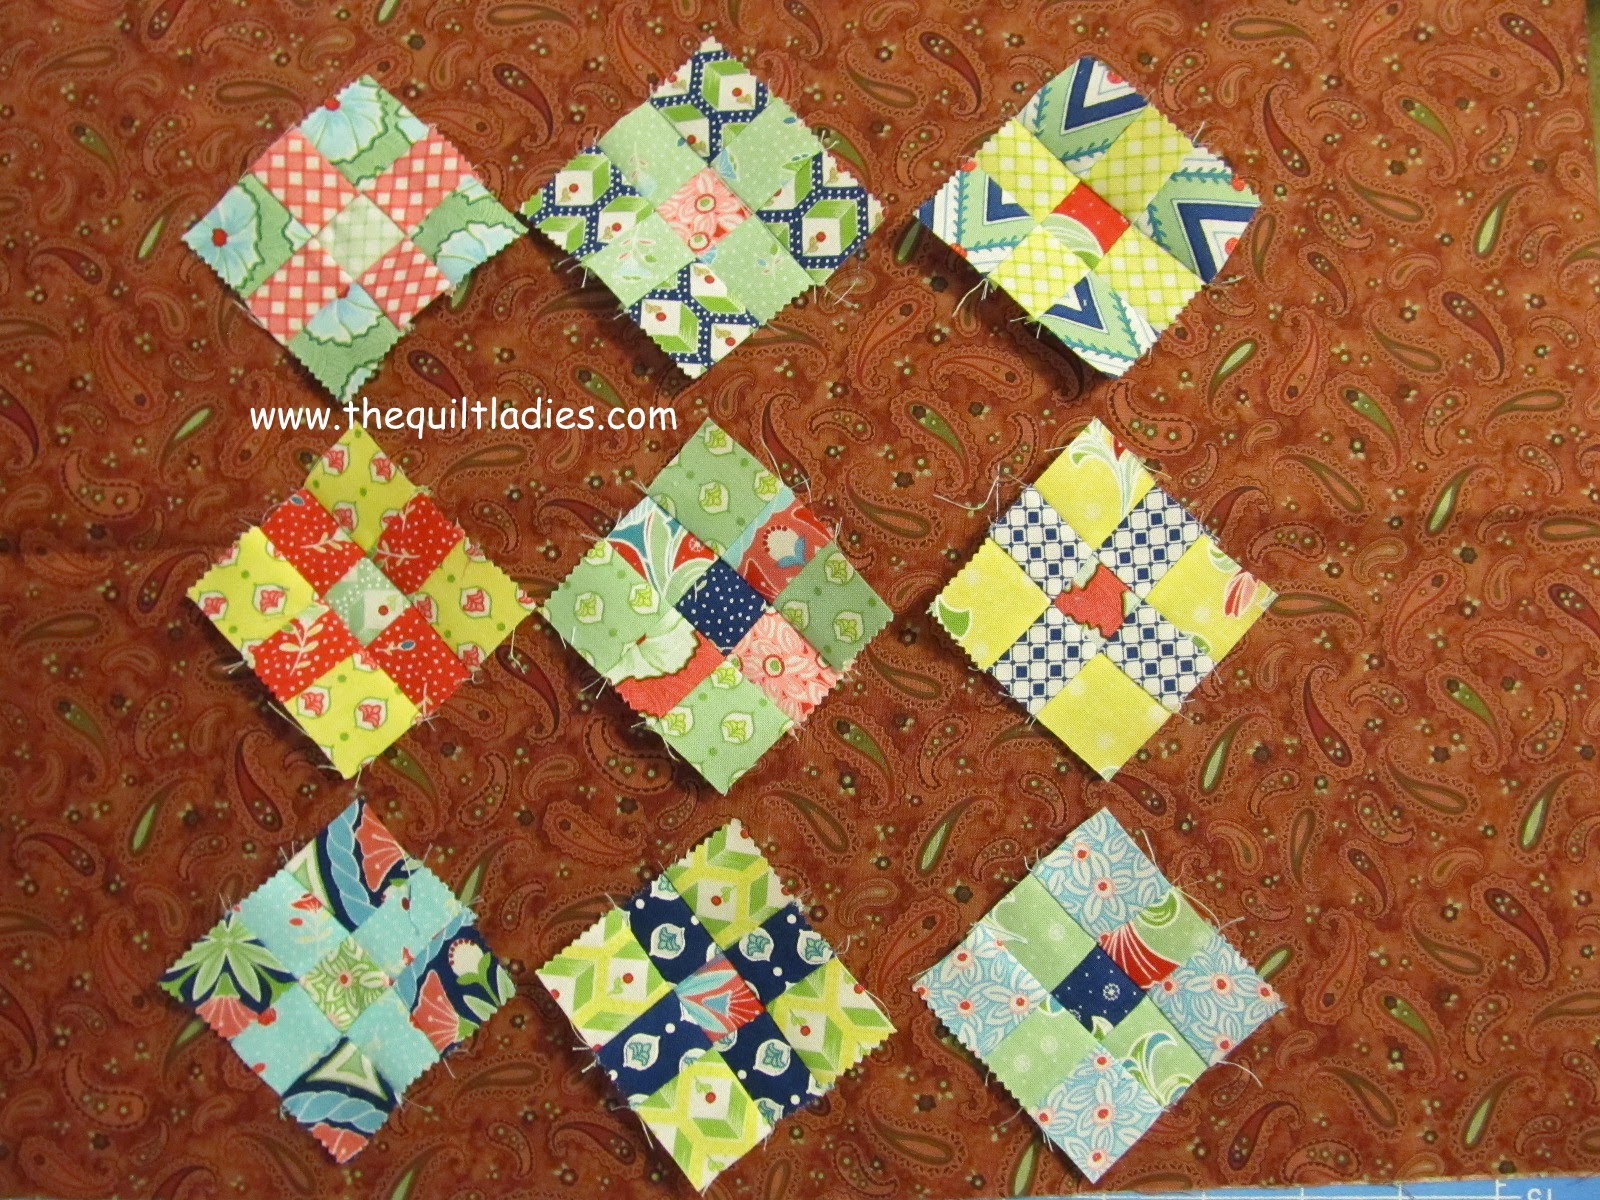 9-Patch Quilt Tutorial.